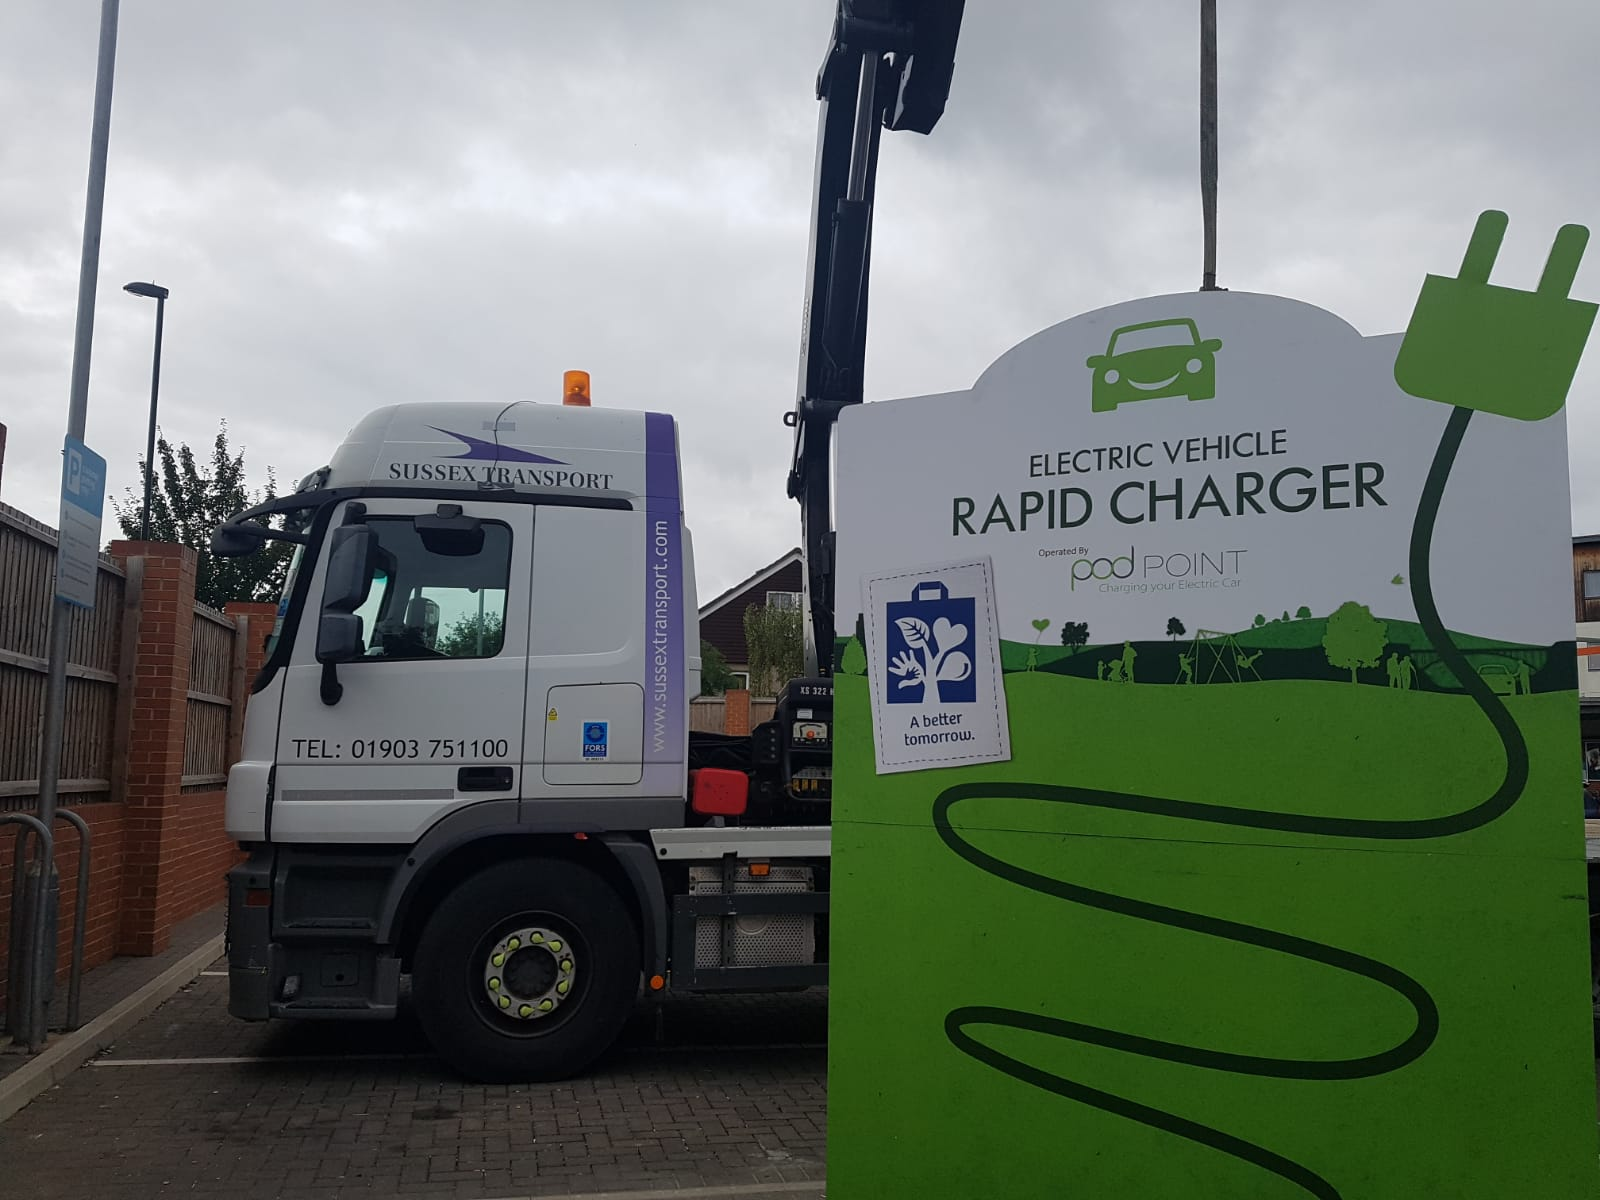 Electric Charger Point Car Charger Delivery